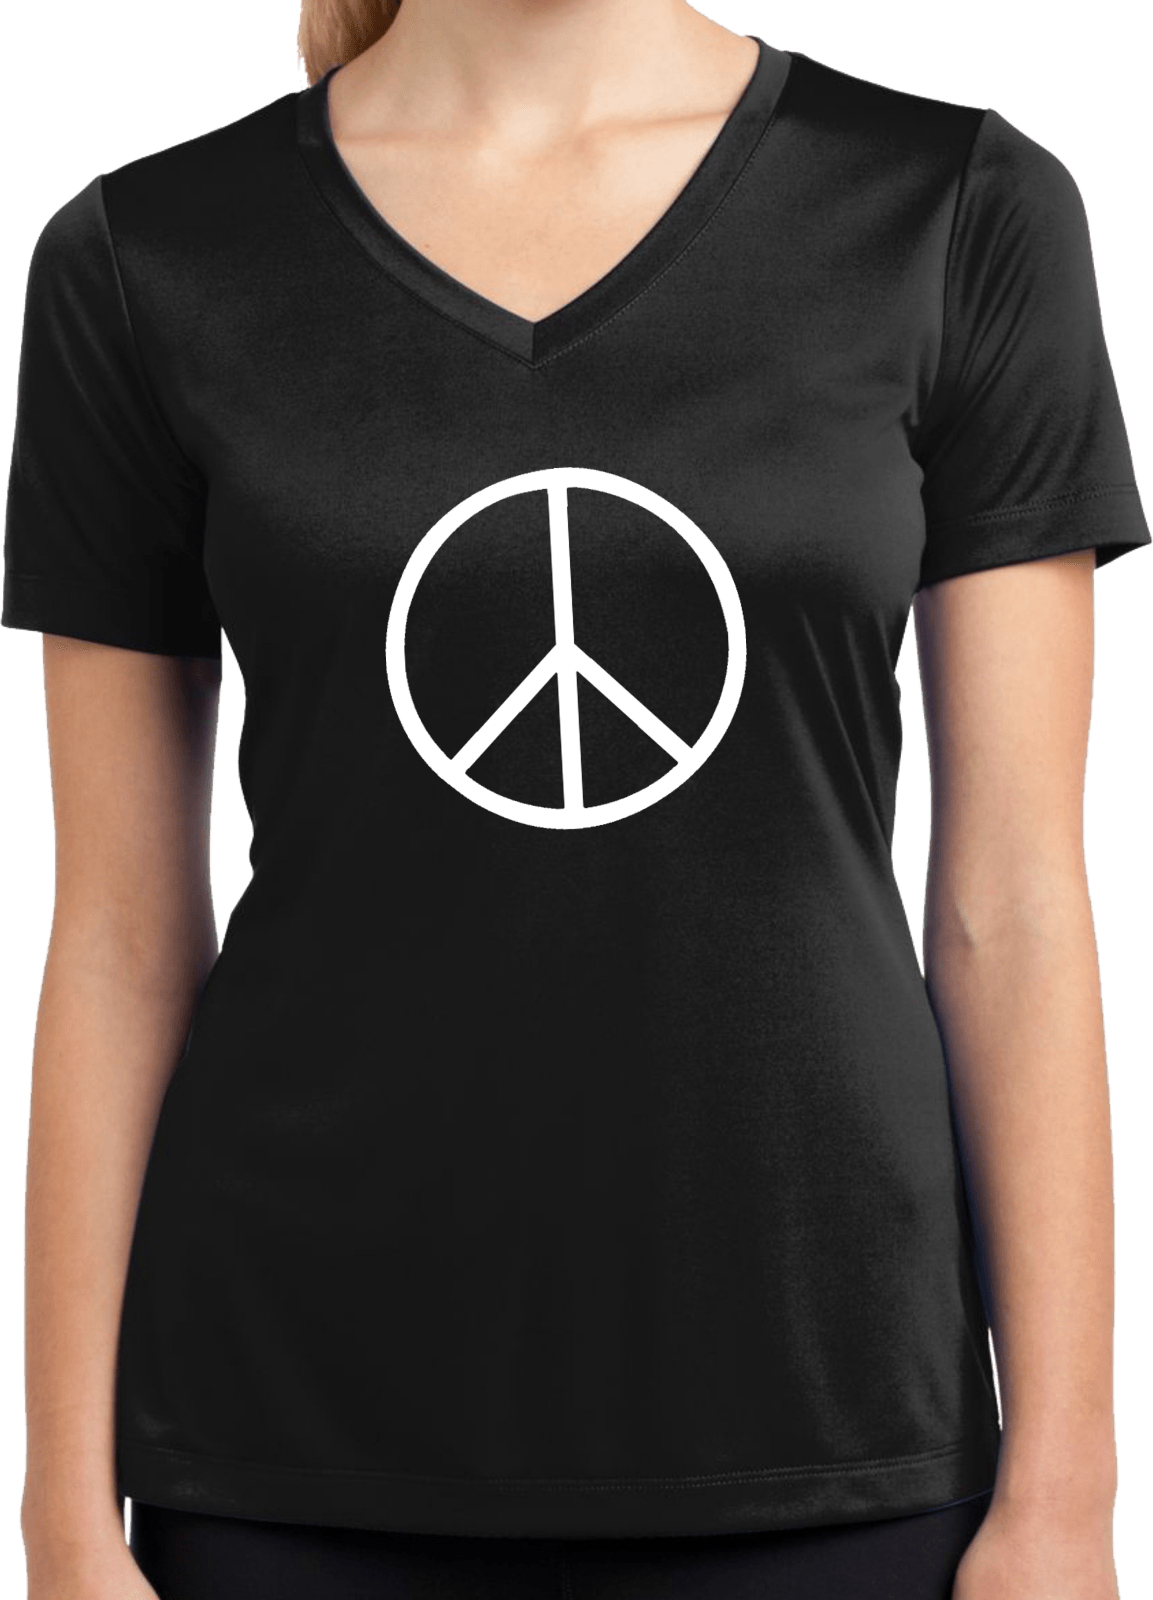 Ladies shirt basic peace white sleeveless moisture wicking for Sweat wicking t shirts